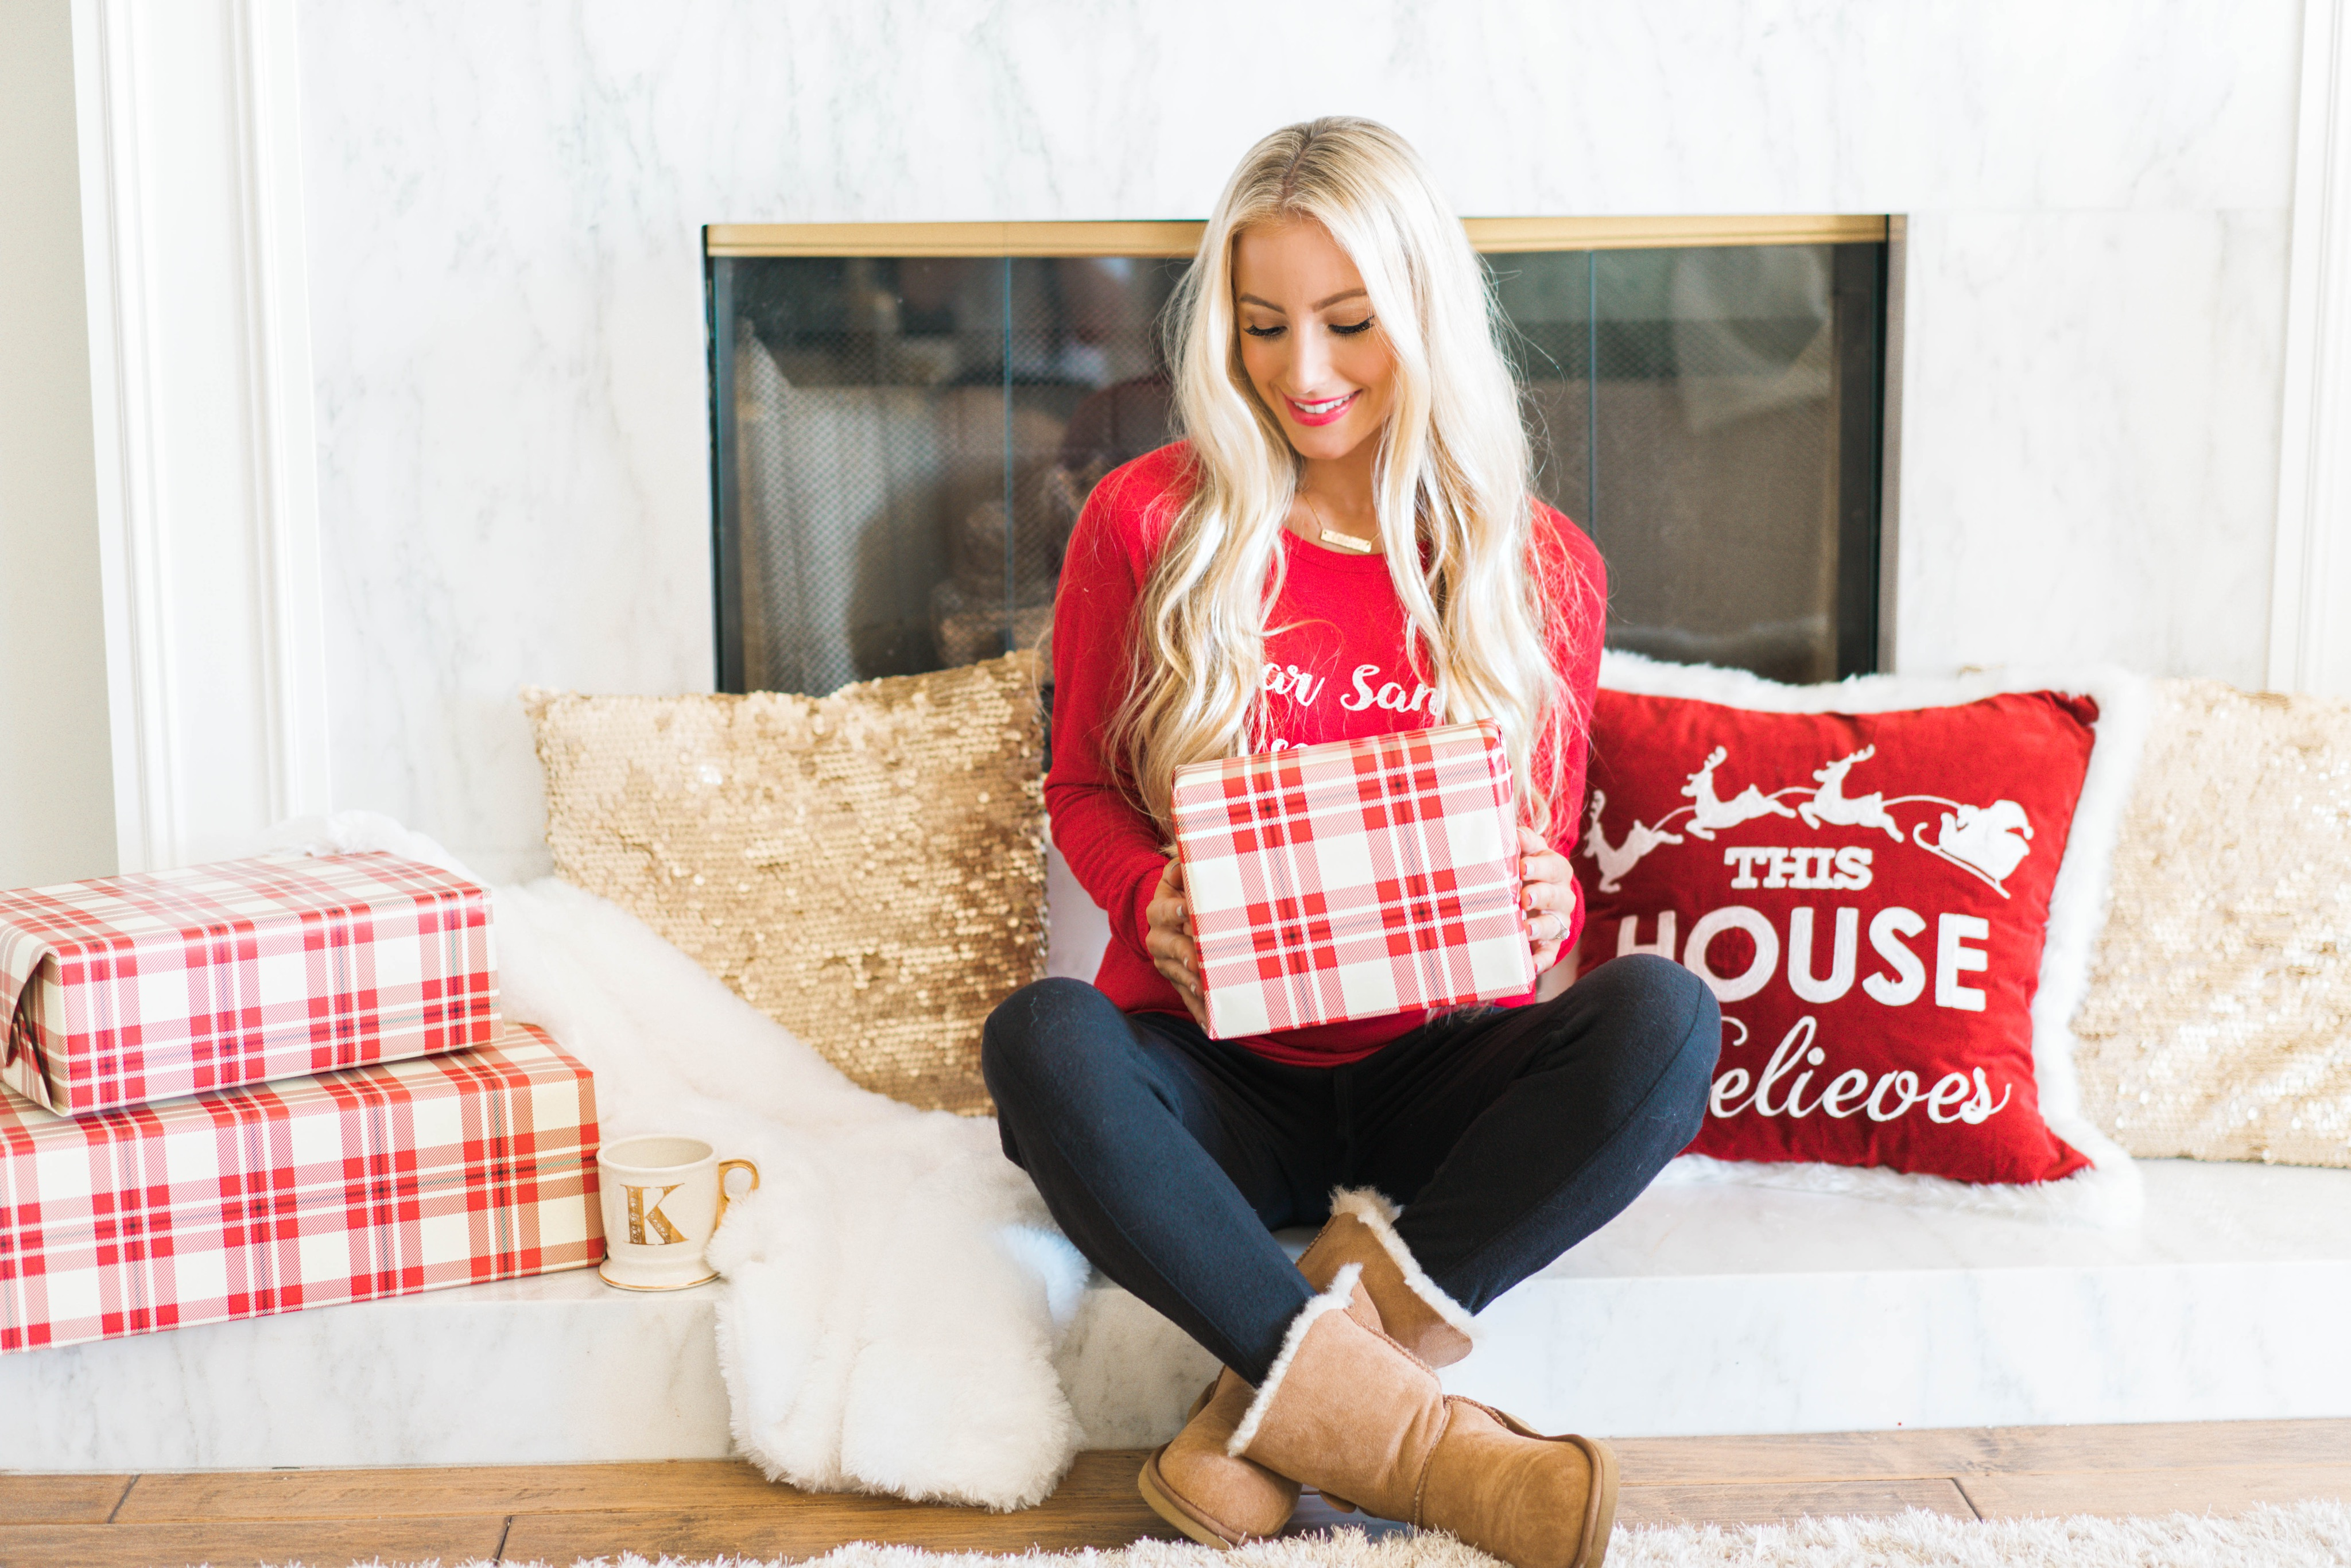 Katelyn Jones A Touch of Pink Blog Holiday Gift Guide Nordstrom Christmas Present Ideas for Her